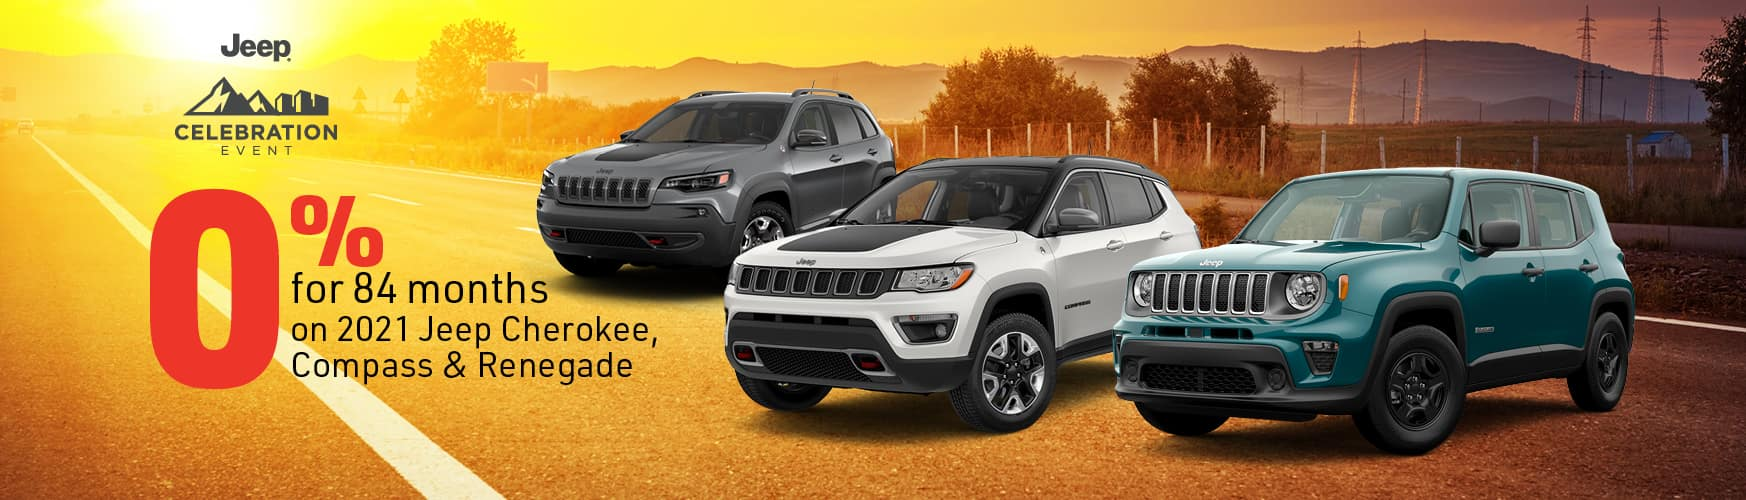 0% for 84 months on 2021 Jeep Cherokee, Compass & Renegade